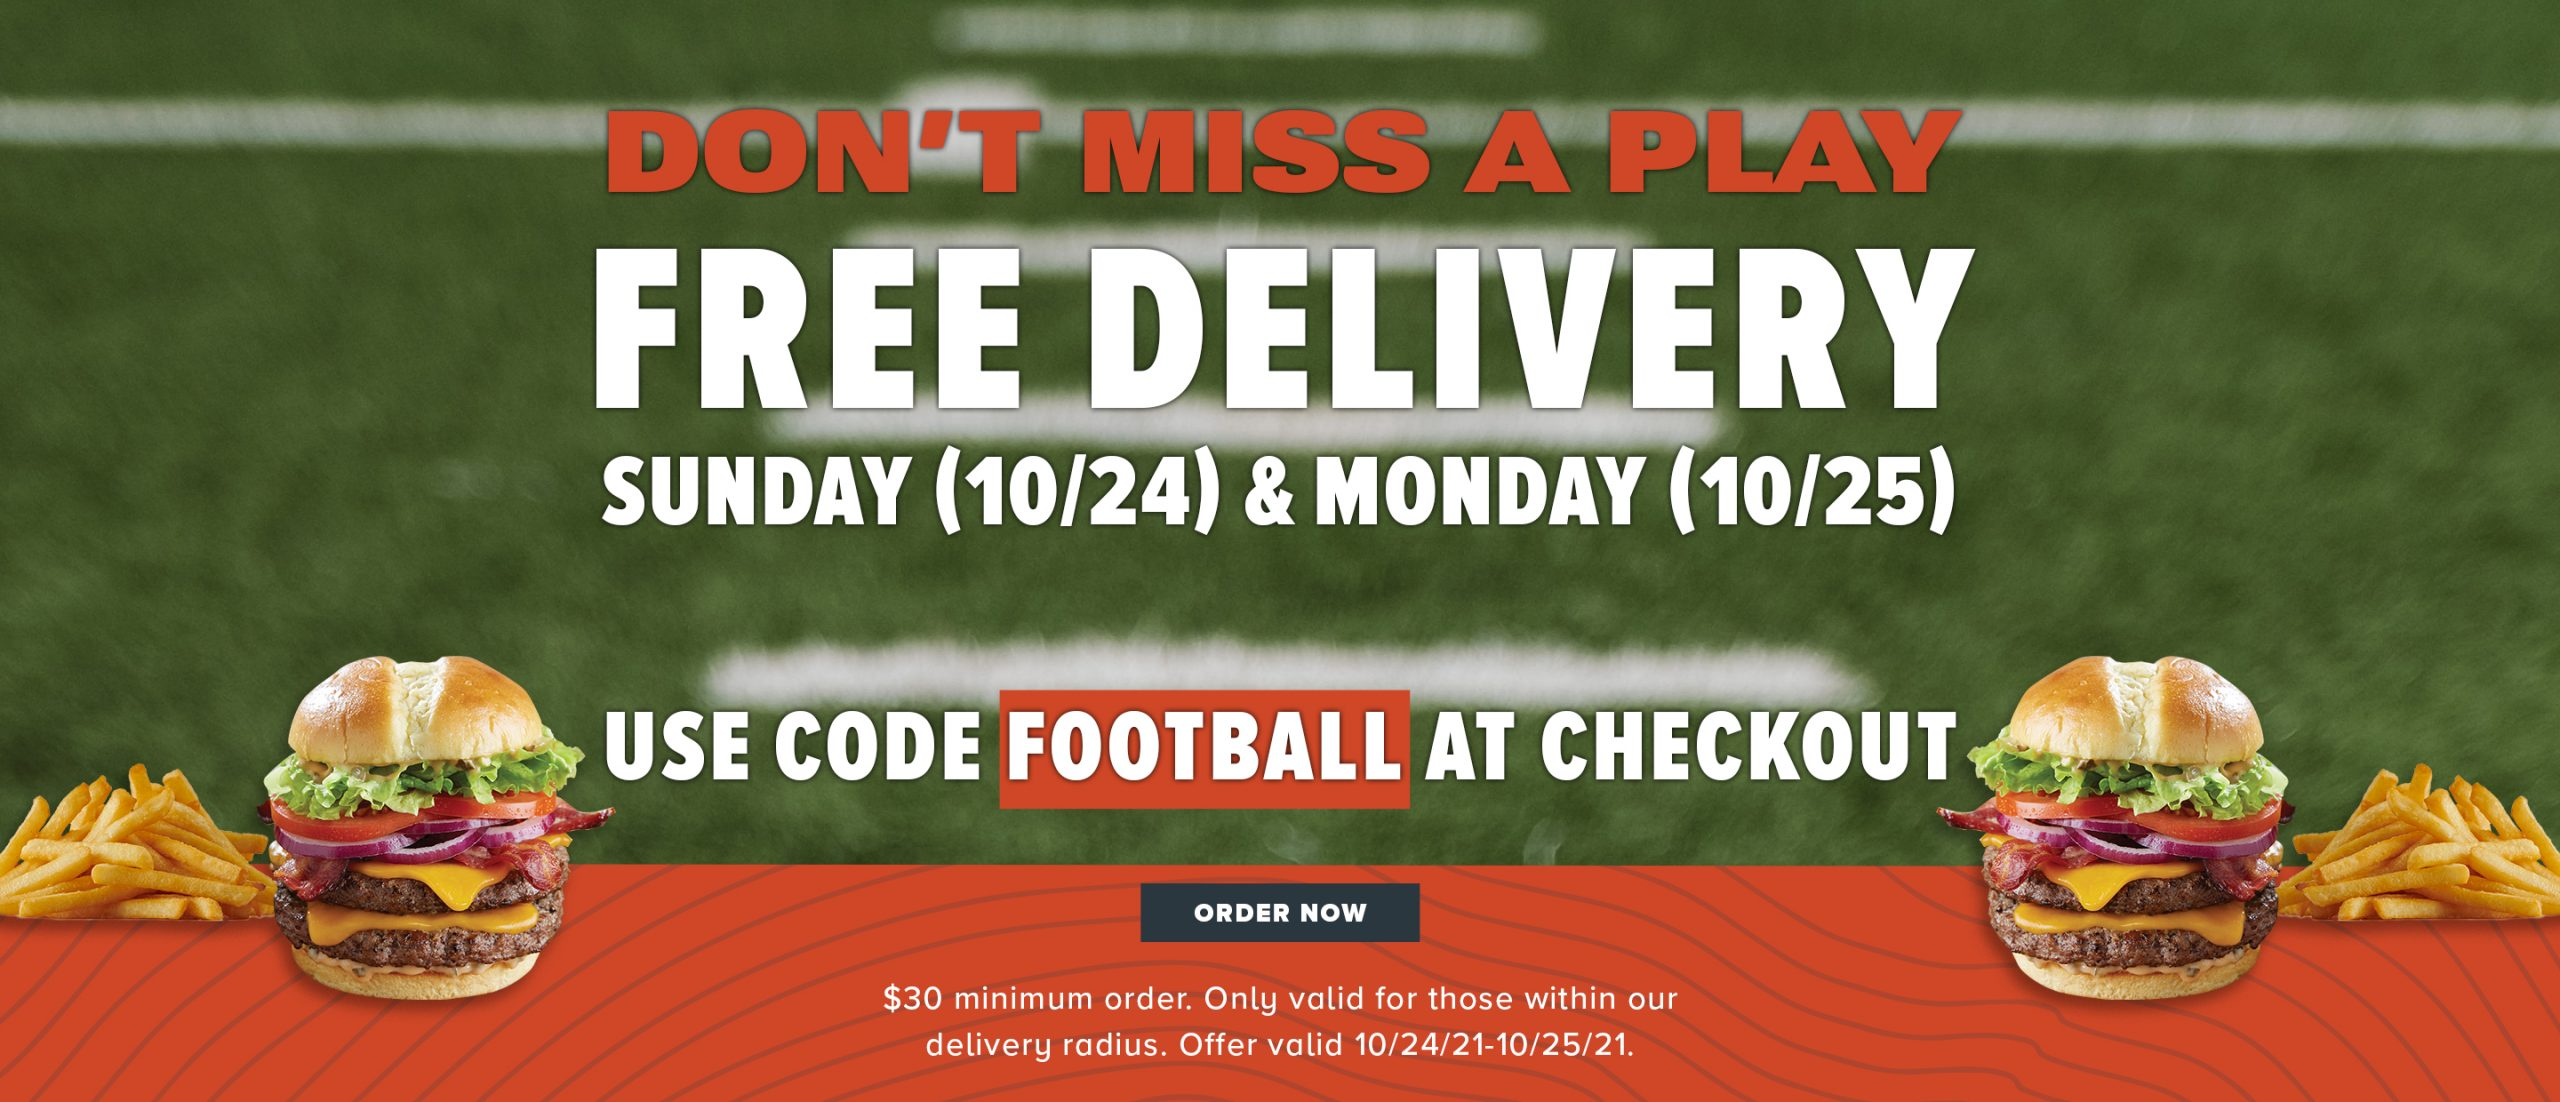 Don't miss a play free delivery. Sunday 10/24 and Monday 10/25. Use code FOOTBALL at checkout. $30 minimum purchase required.